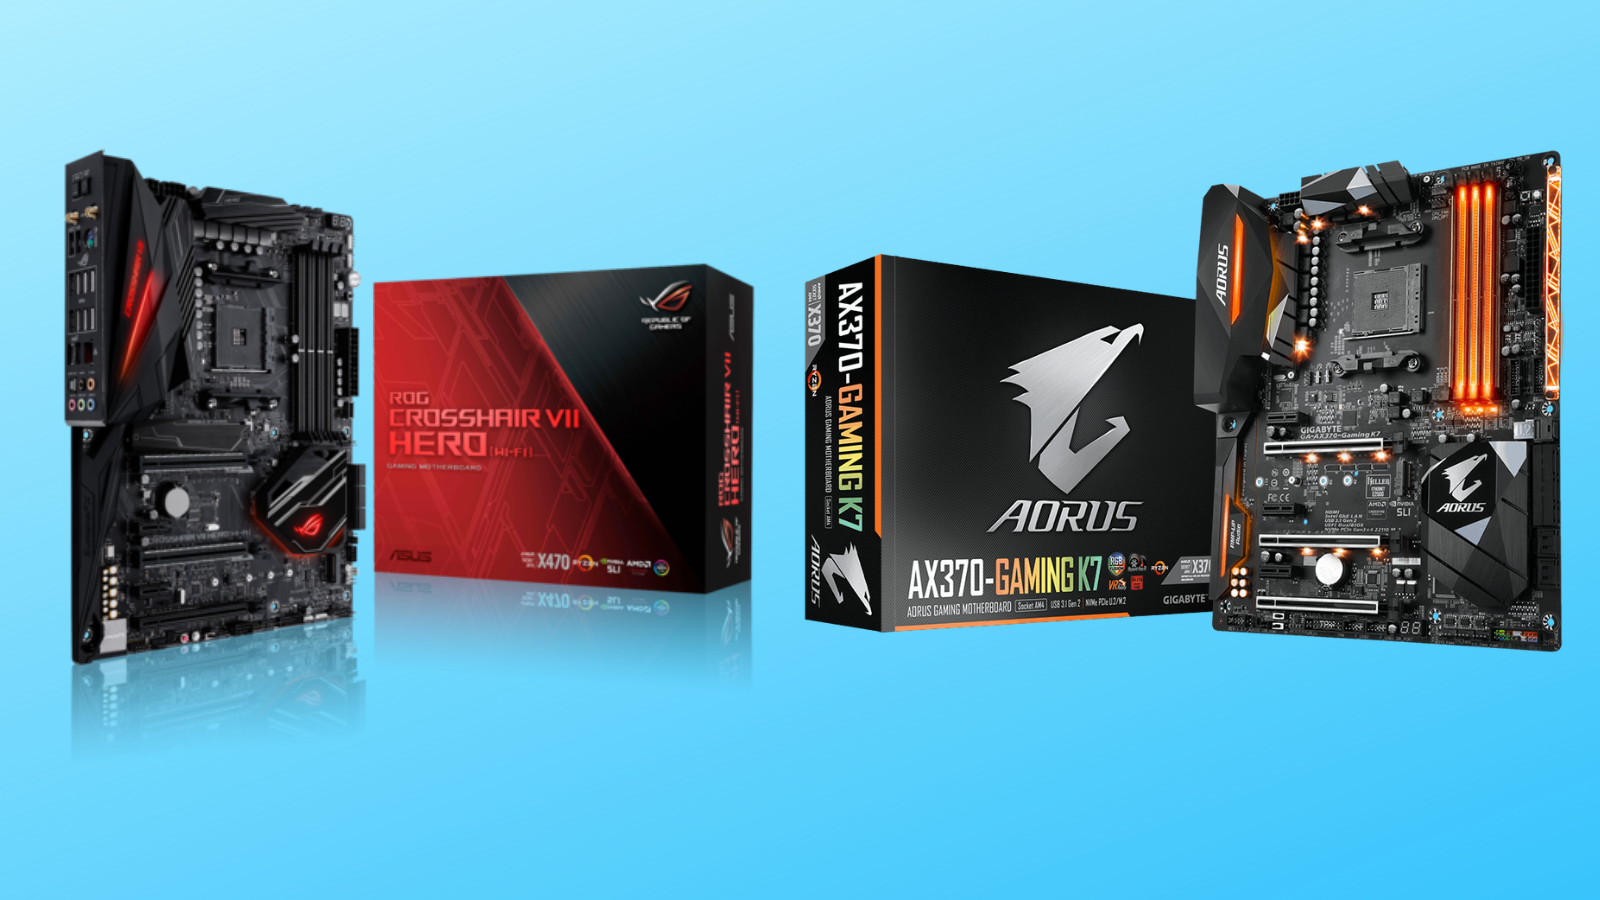 The Best X470 Motherboards to Buy in 2019 For AMD Ryzen CPUs